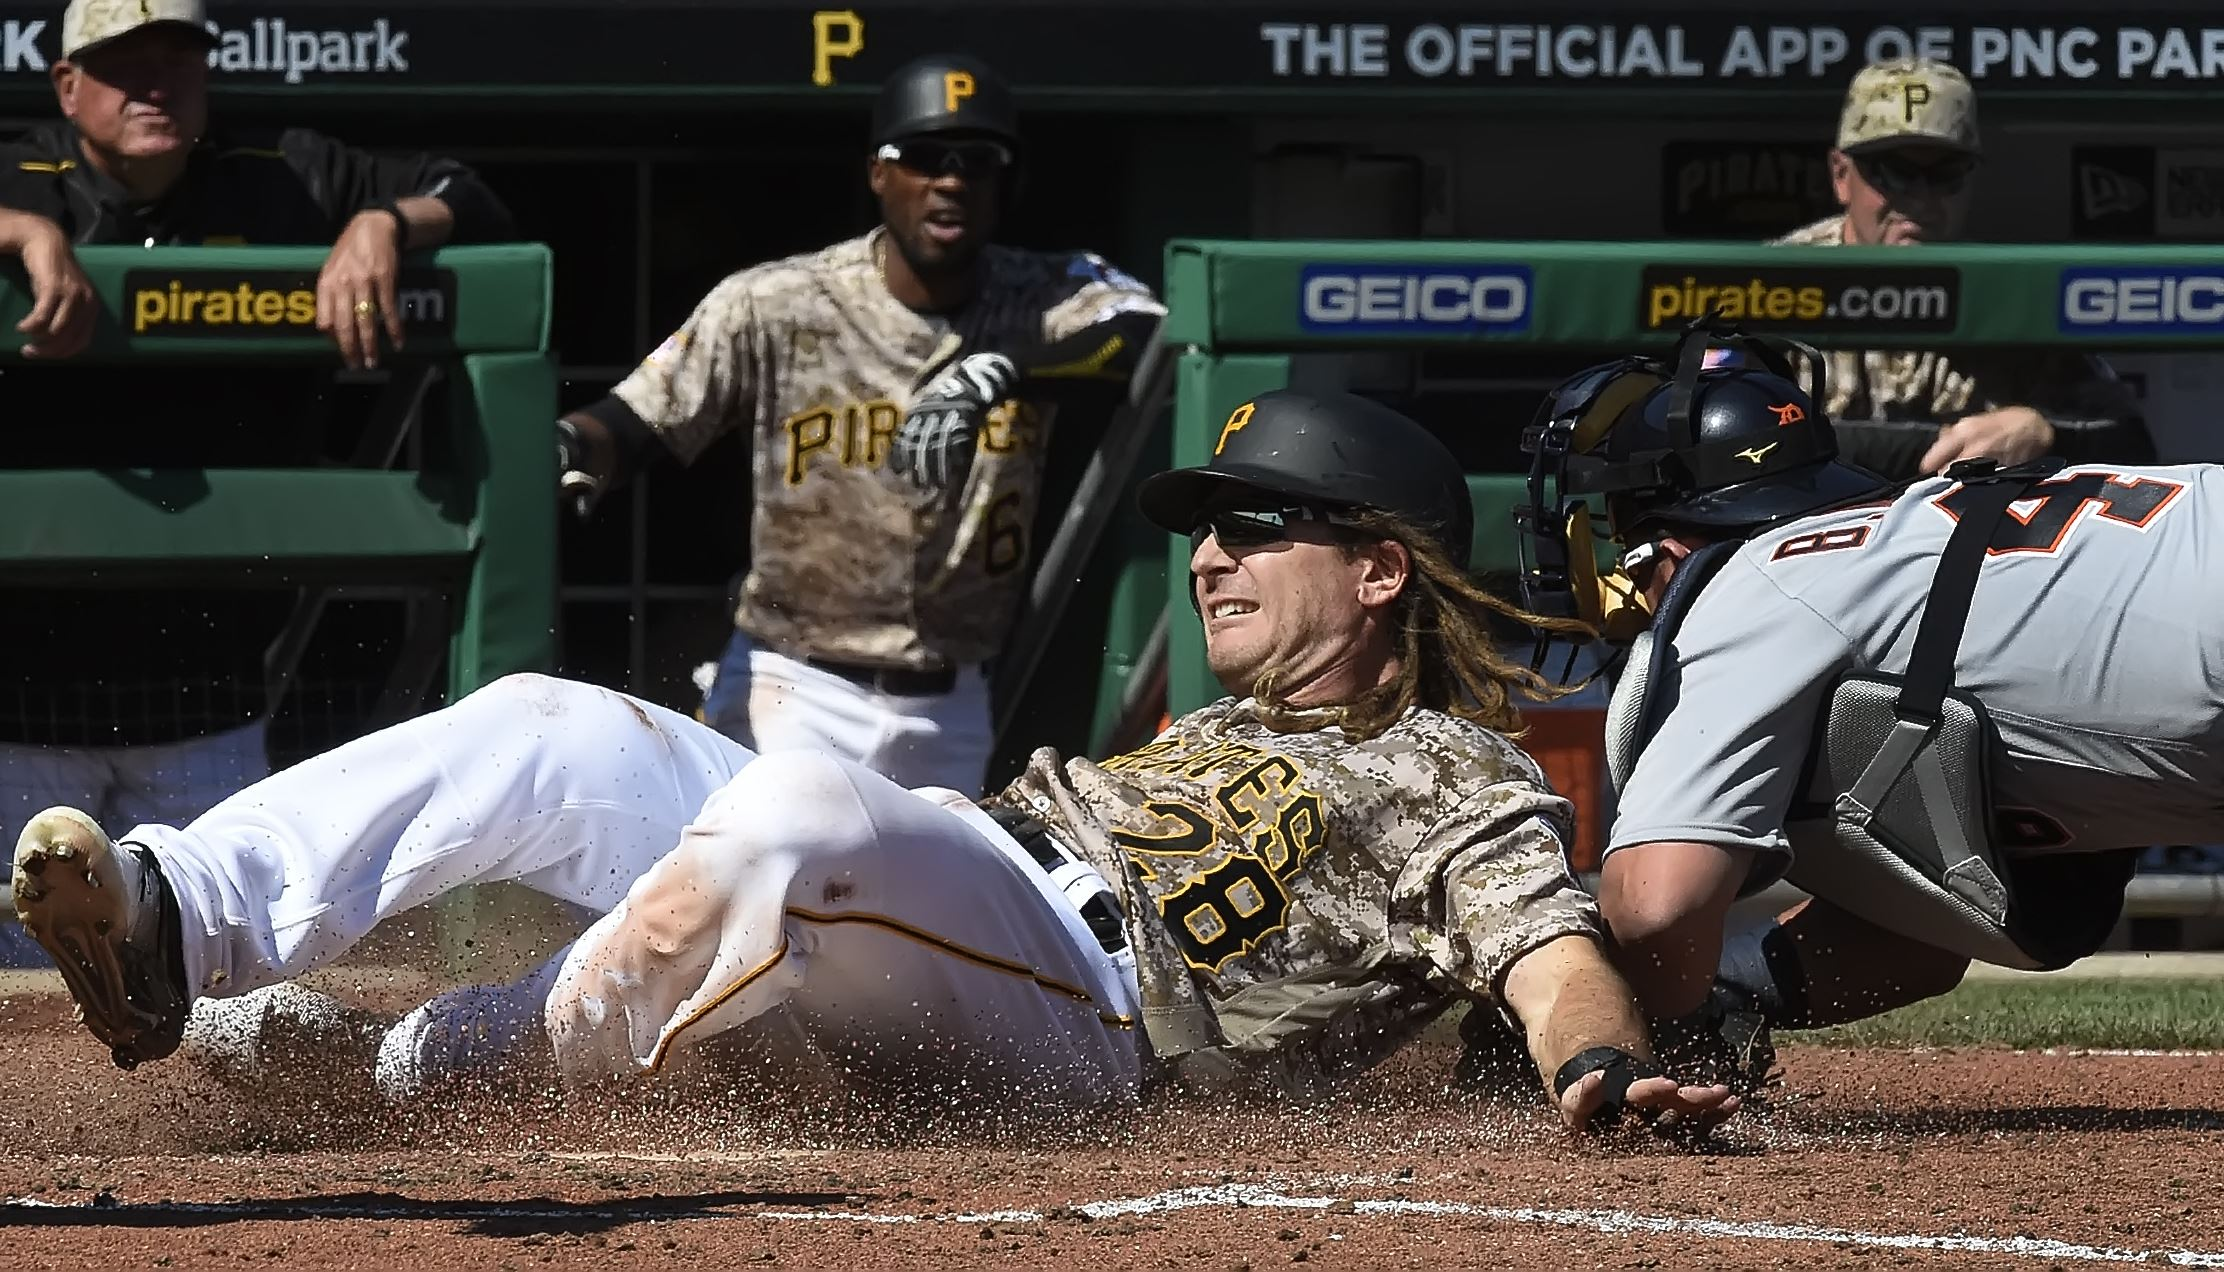 Pirates notebook: Jaso's average keeps rising atop lineup